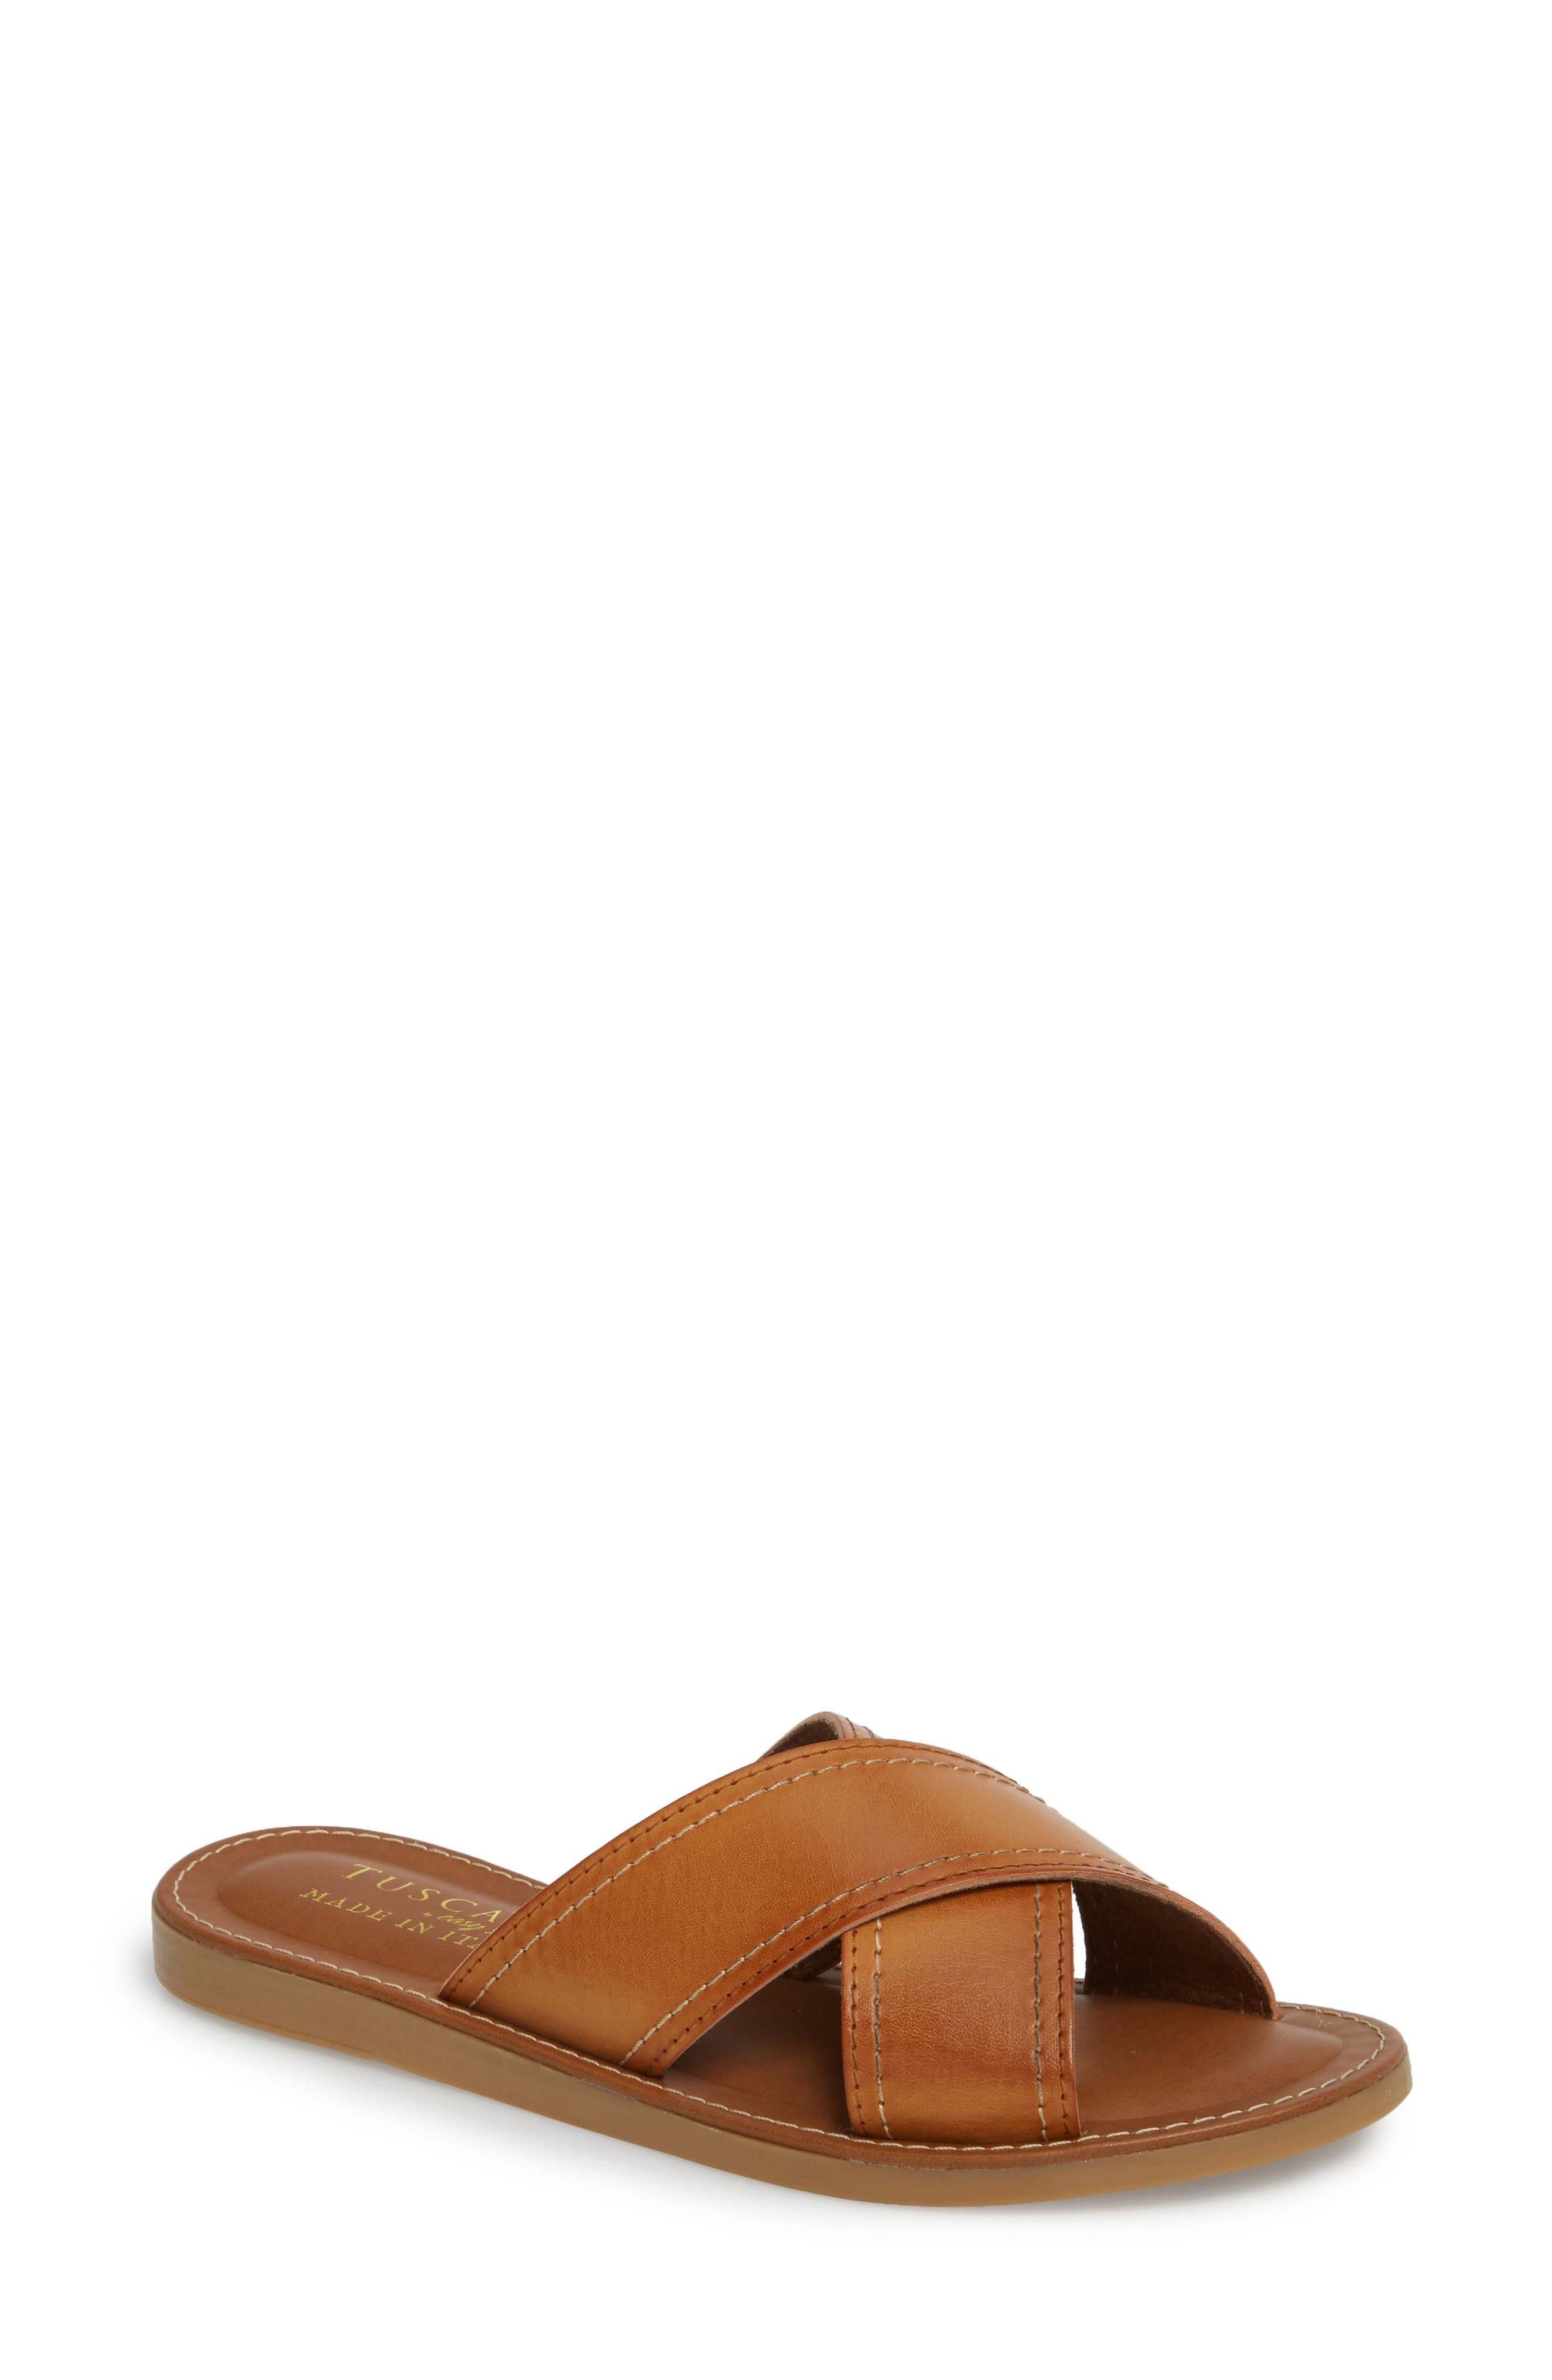 Womens Leather Tan Brown Slippers Wide Fitting Size 7 in Box